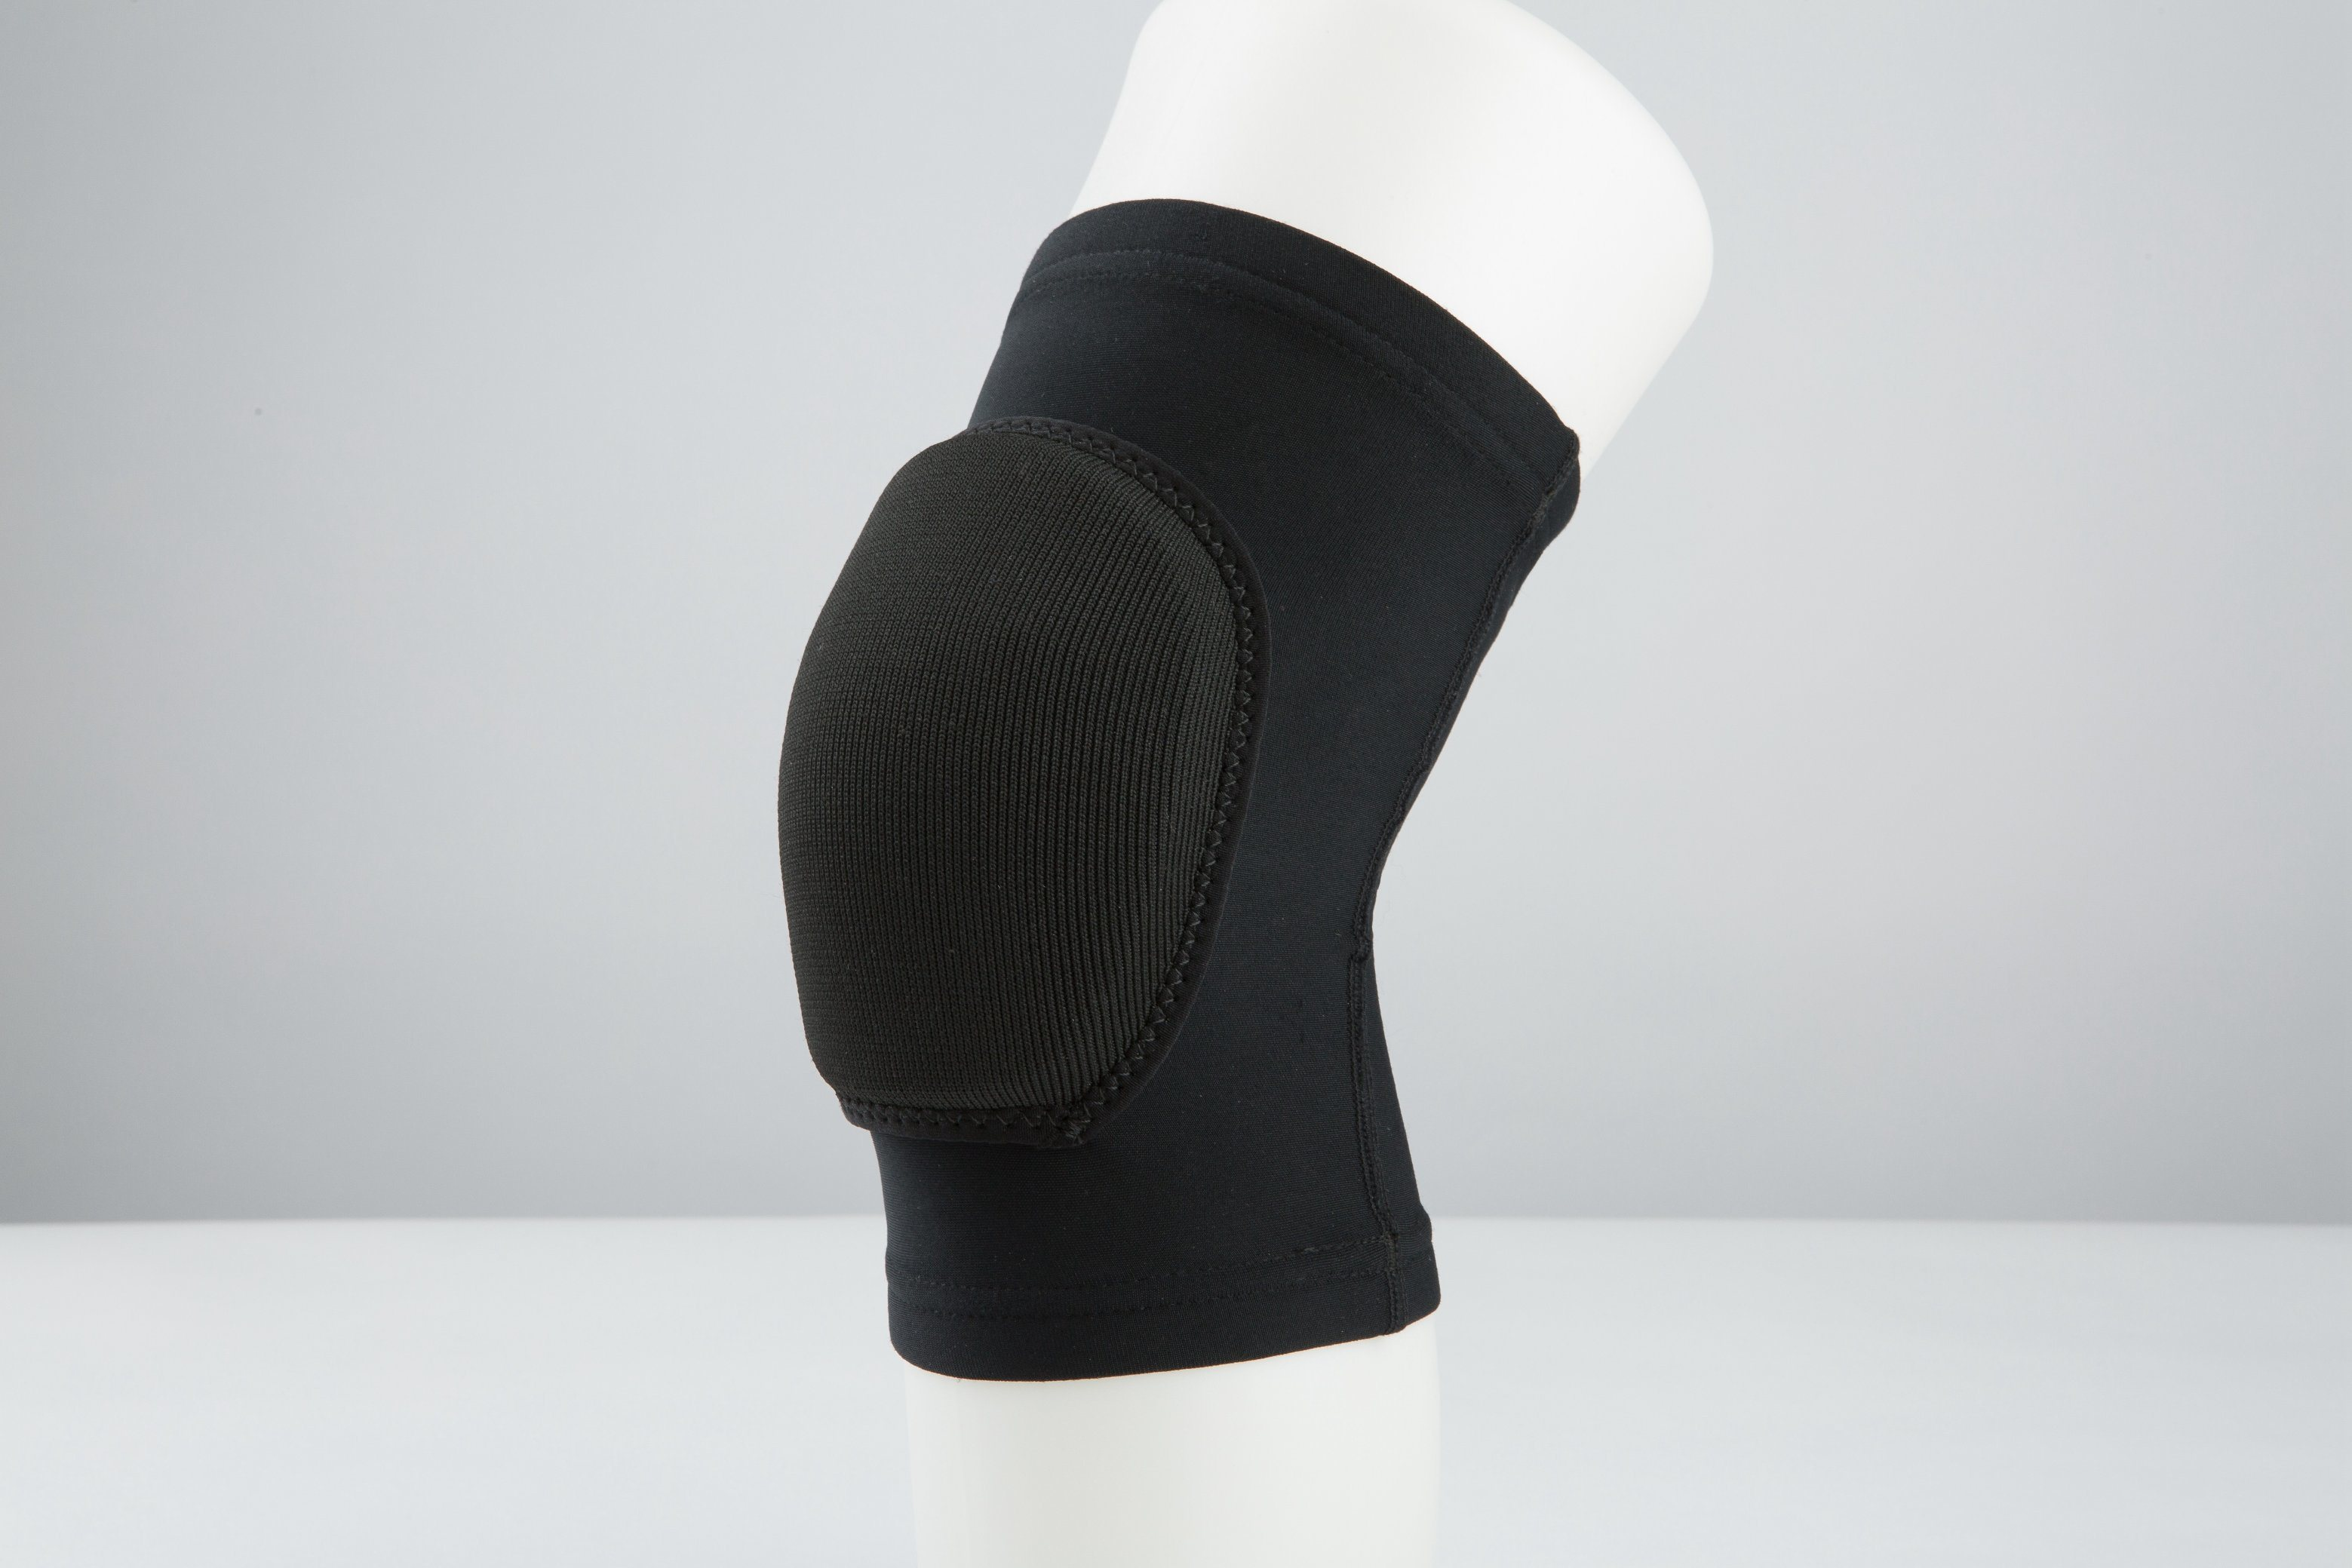 Lithe Foam Compression Knee Brace Guard Support with Soft Cushion pictures & photos